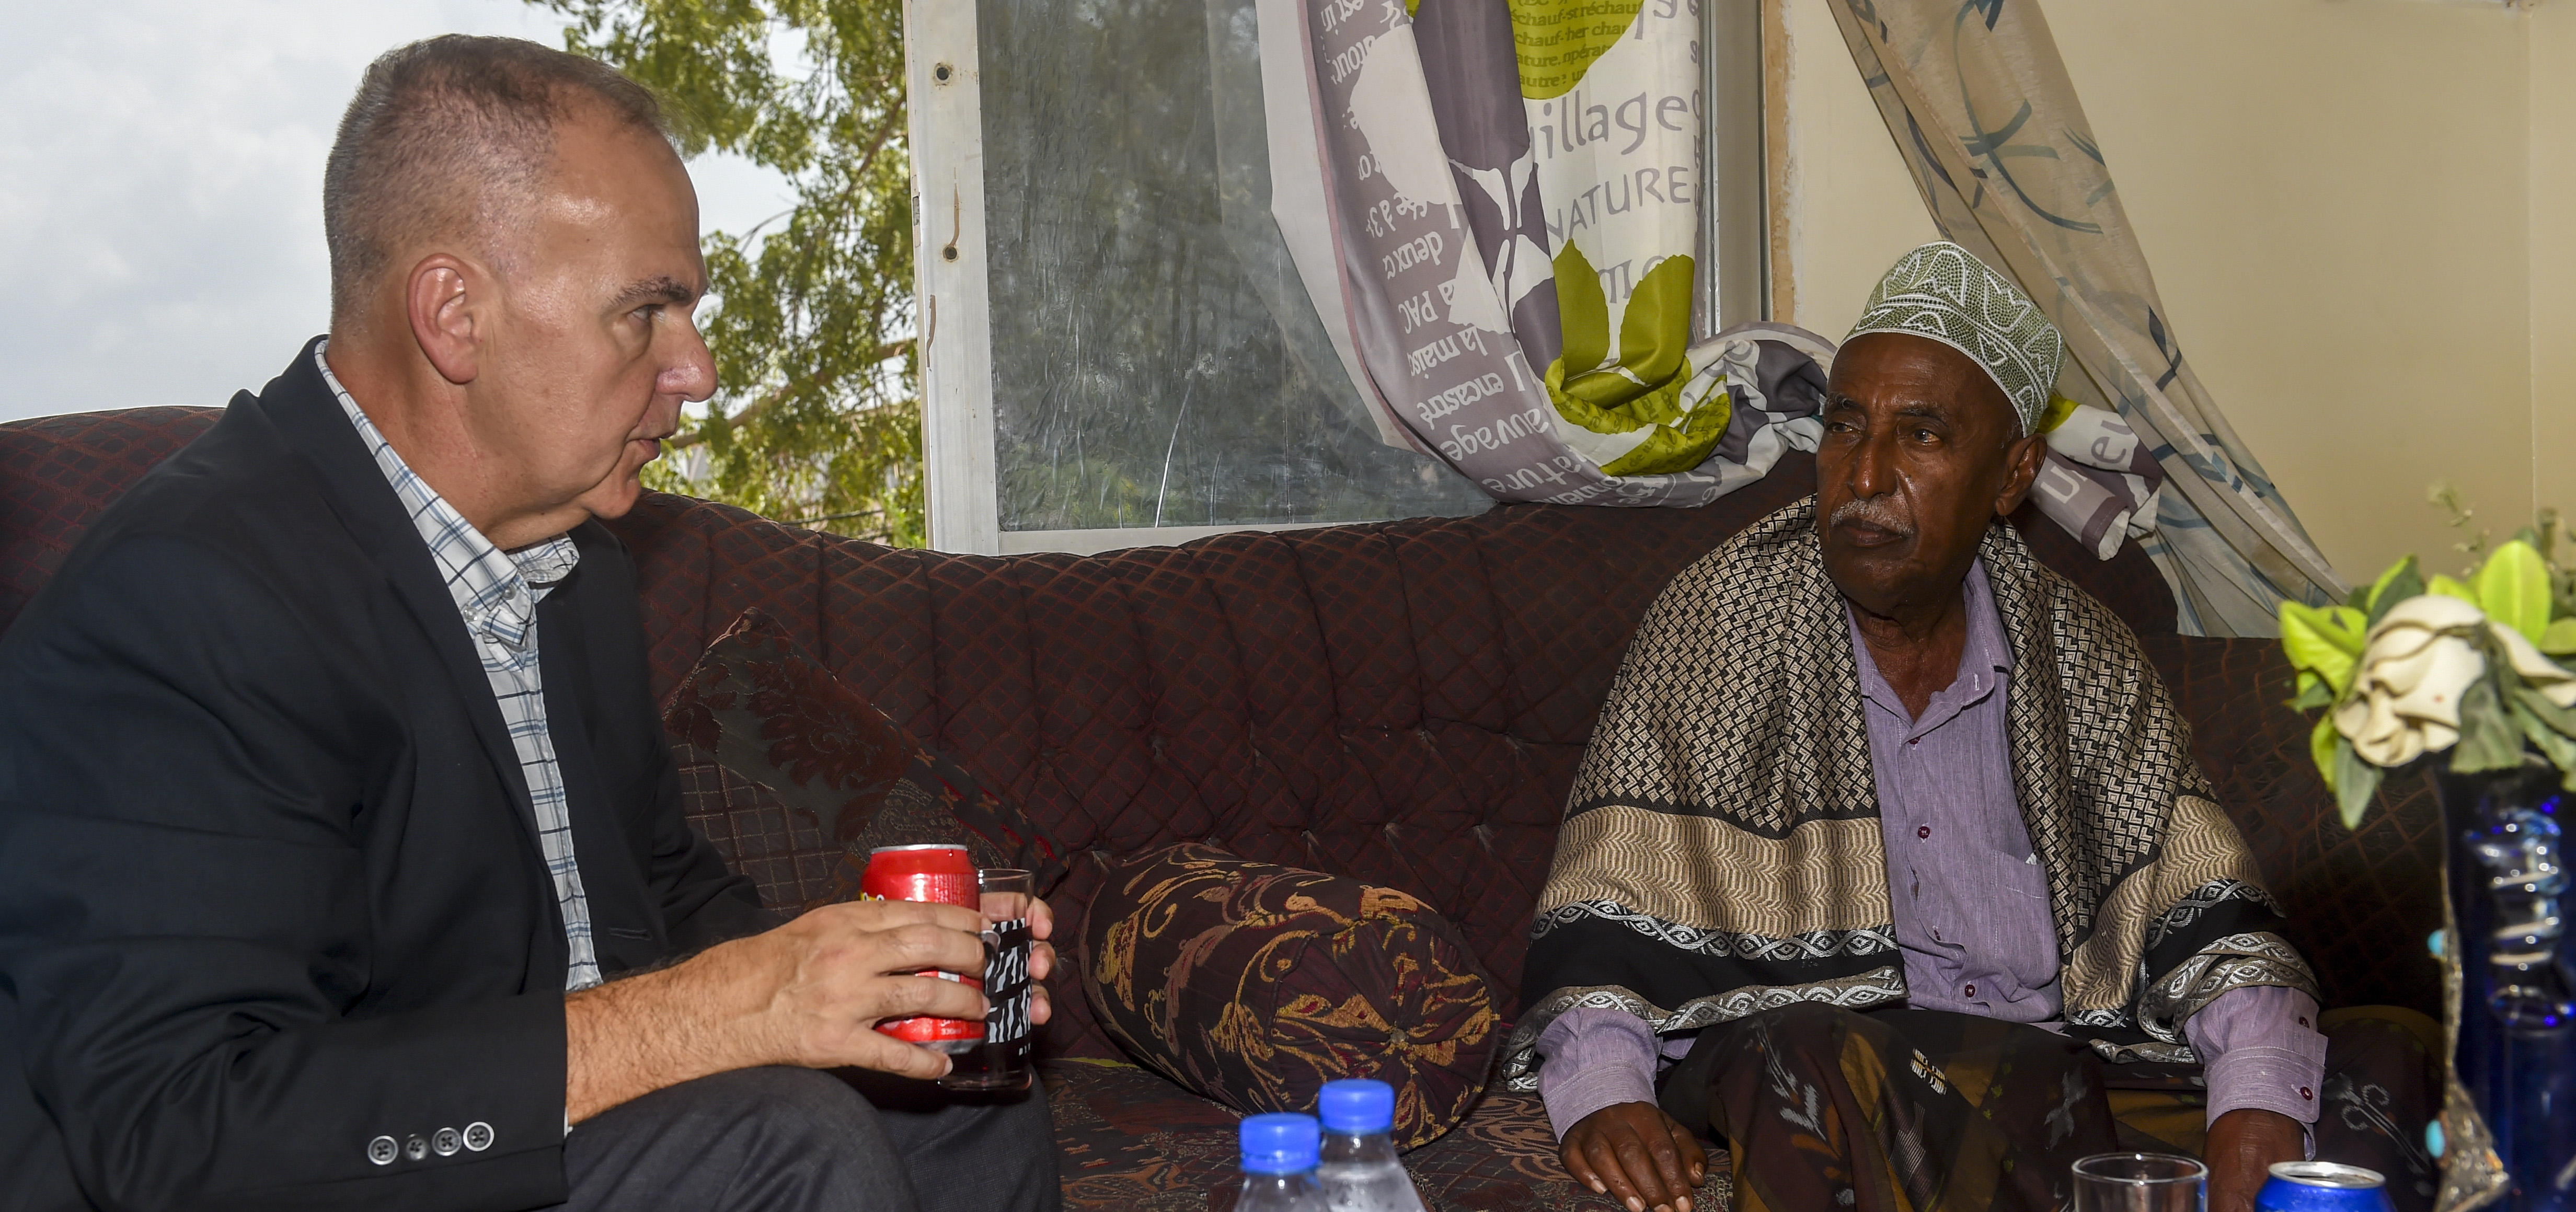 U.S. Navy Capt. David Rodriguez (left), Combined Joint Task Force - Horn of Africa Religious Affairs director, speaks with Abdelkader Mohamed Humad, Sultan of Tadjoura, during a visit to his home in Djibouti City, Djibouti, Nov. 4, 2017. They discussed visits to orphanages and schools to bring food and clothing, help with health issues, and teach English.  The English lessons were particularly interesting to Humad, as they will make the children of Tadjoura more competitive in the future job market. (U.S. Air Force photo by Staff Sgt. Timothy Moore)